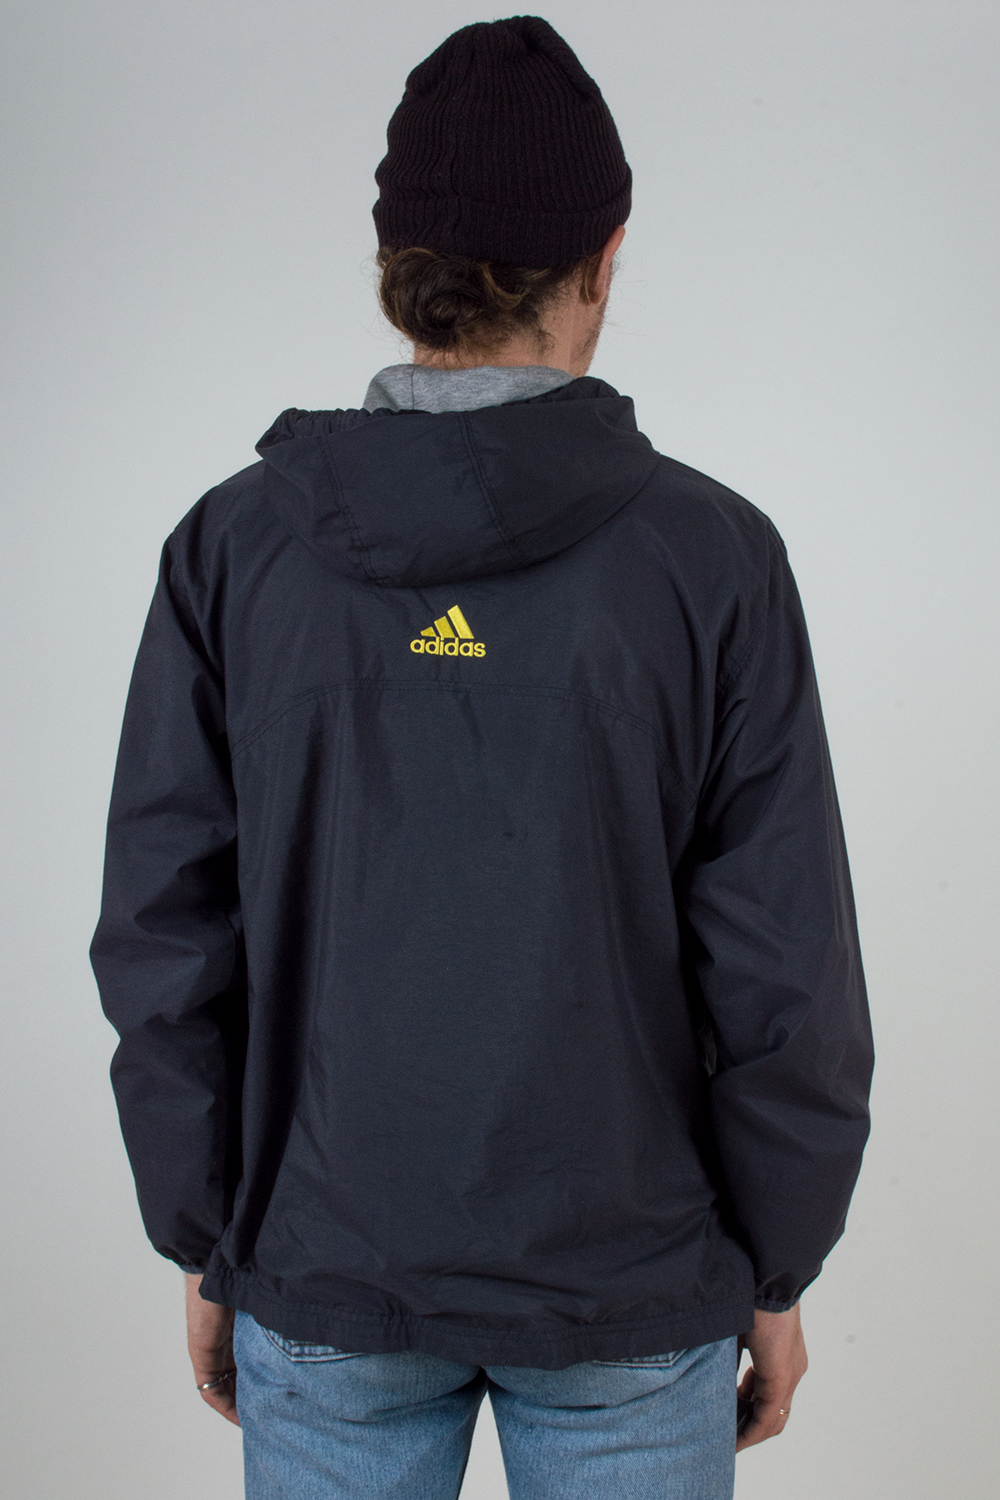 vintage navy blue Adidas track jacket with yellow logo